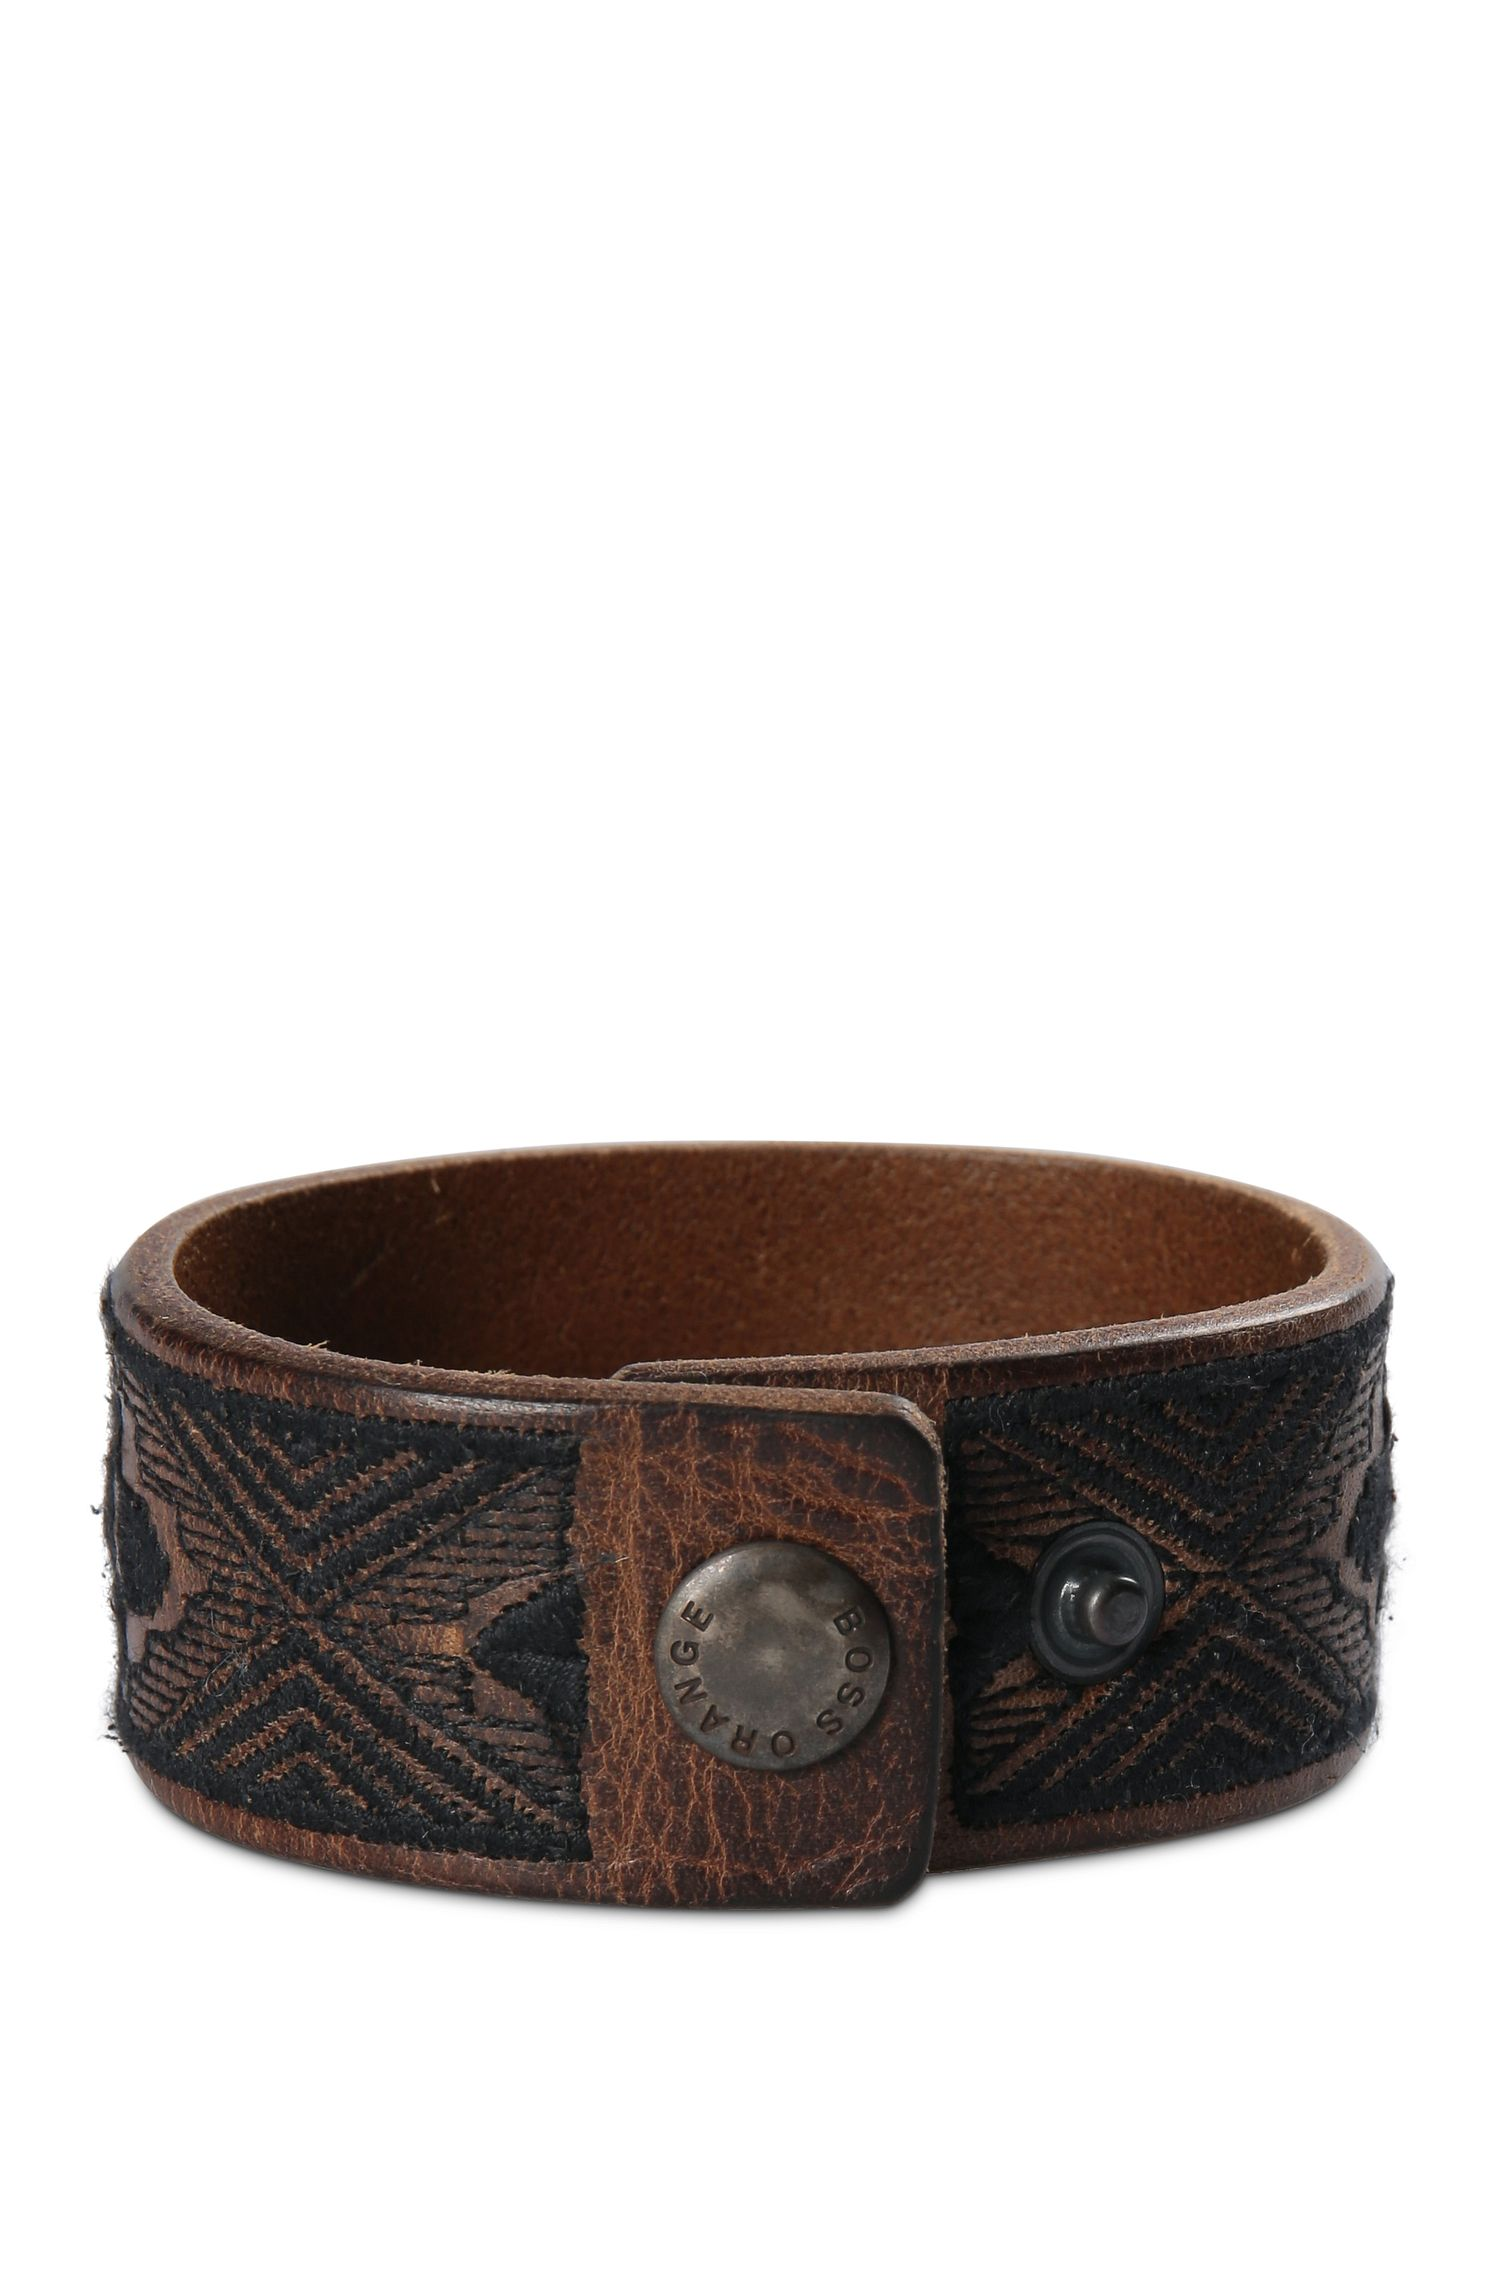 'Manton' | Embroidered Leather Cuff Bracelet